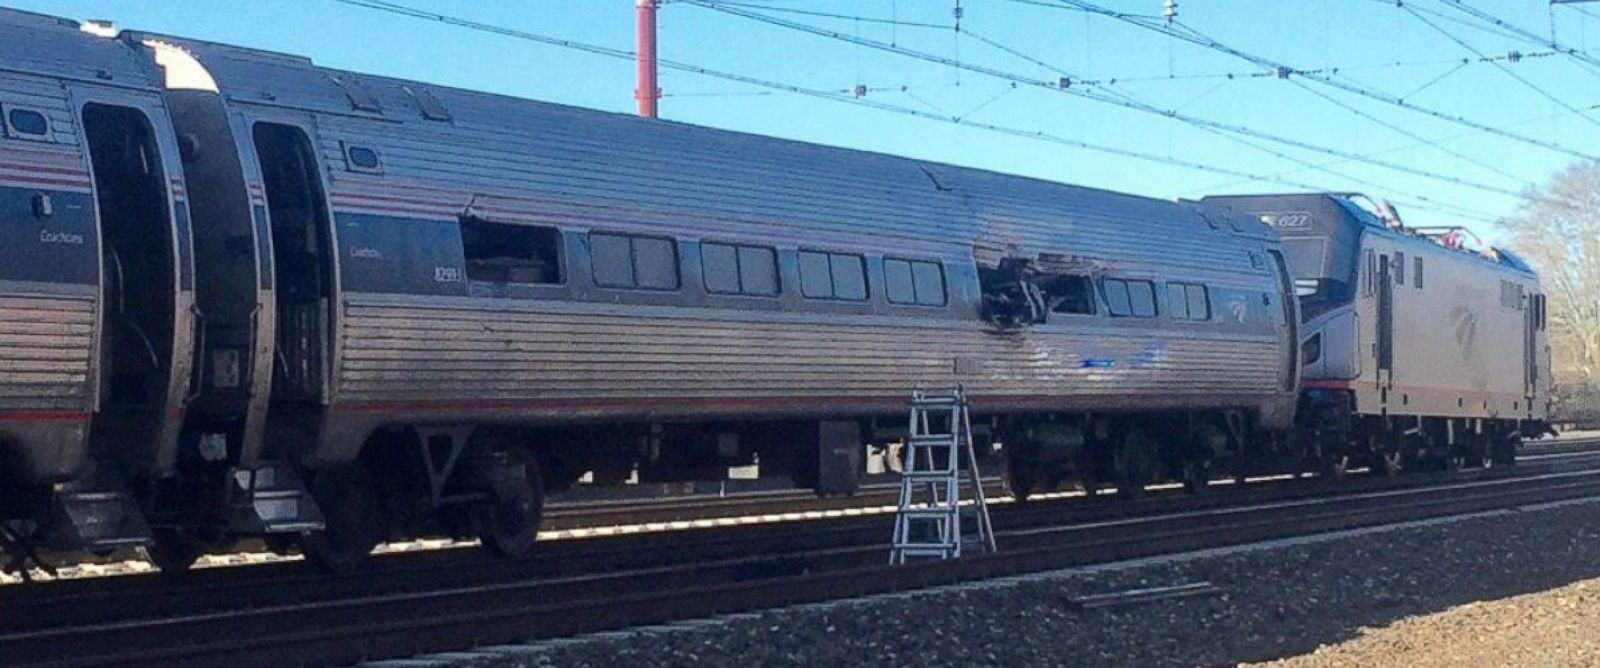 2 Dead After Amtrak Train Derails Near Philadelphia